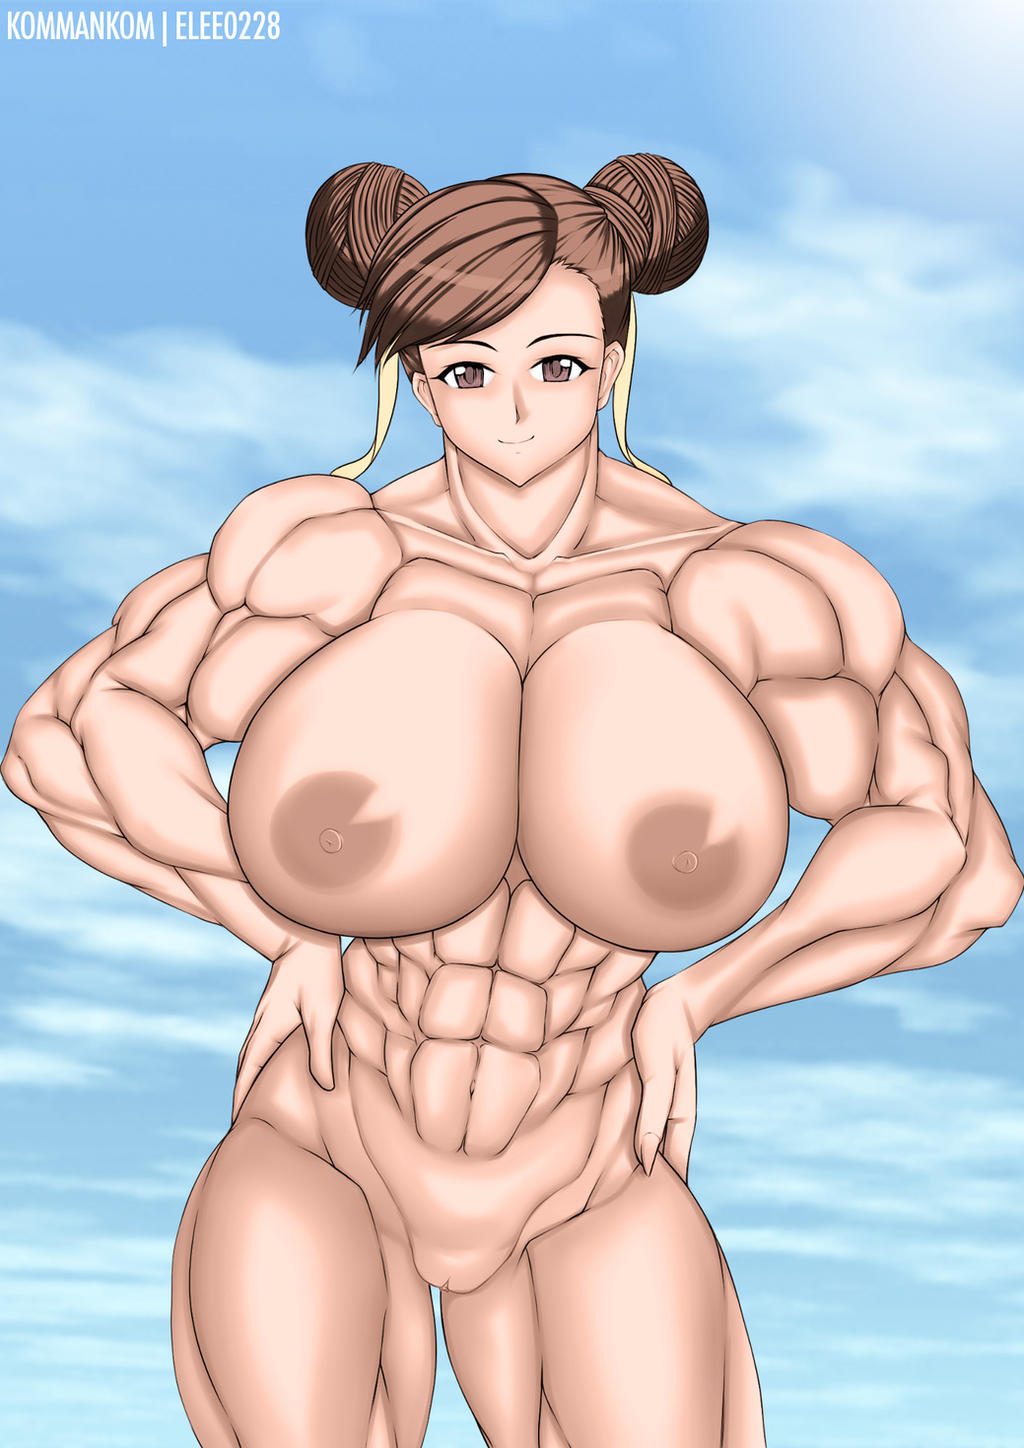 Really. chun li nude art are